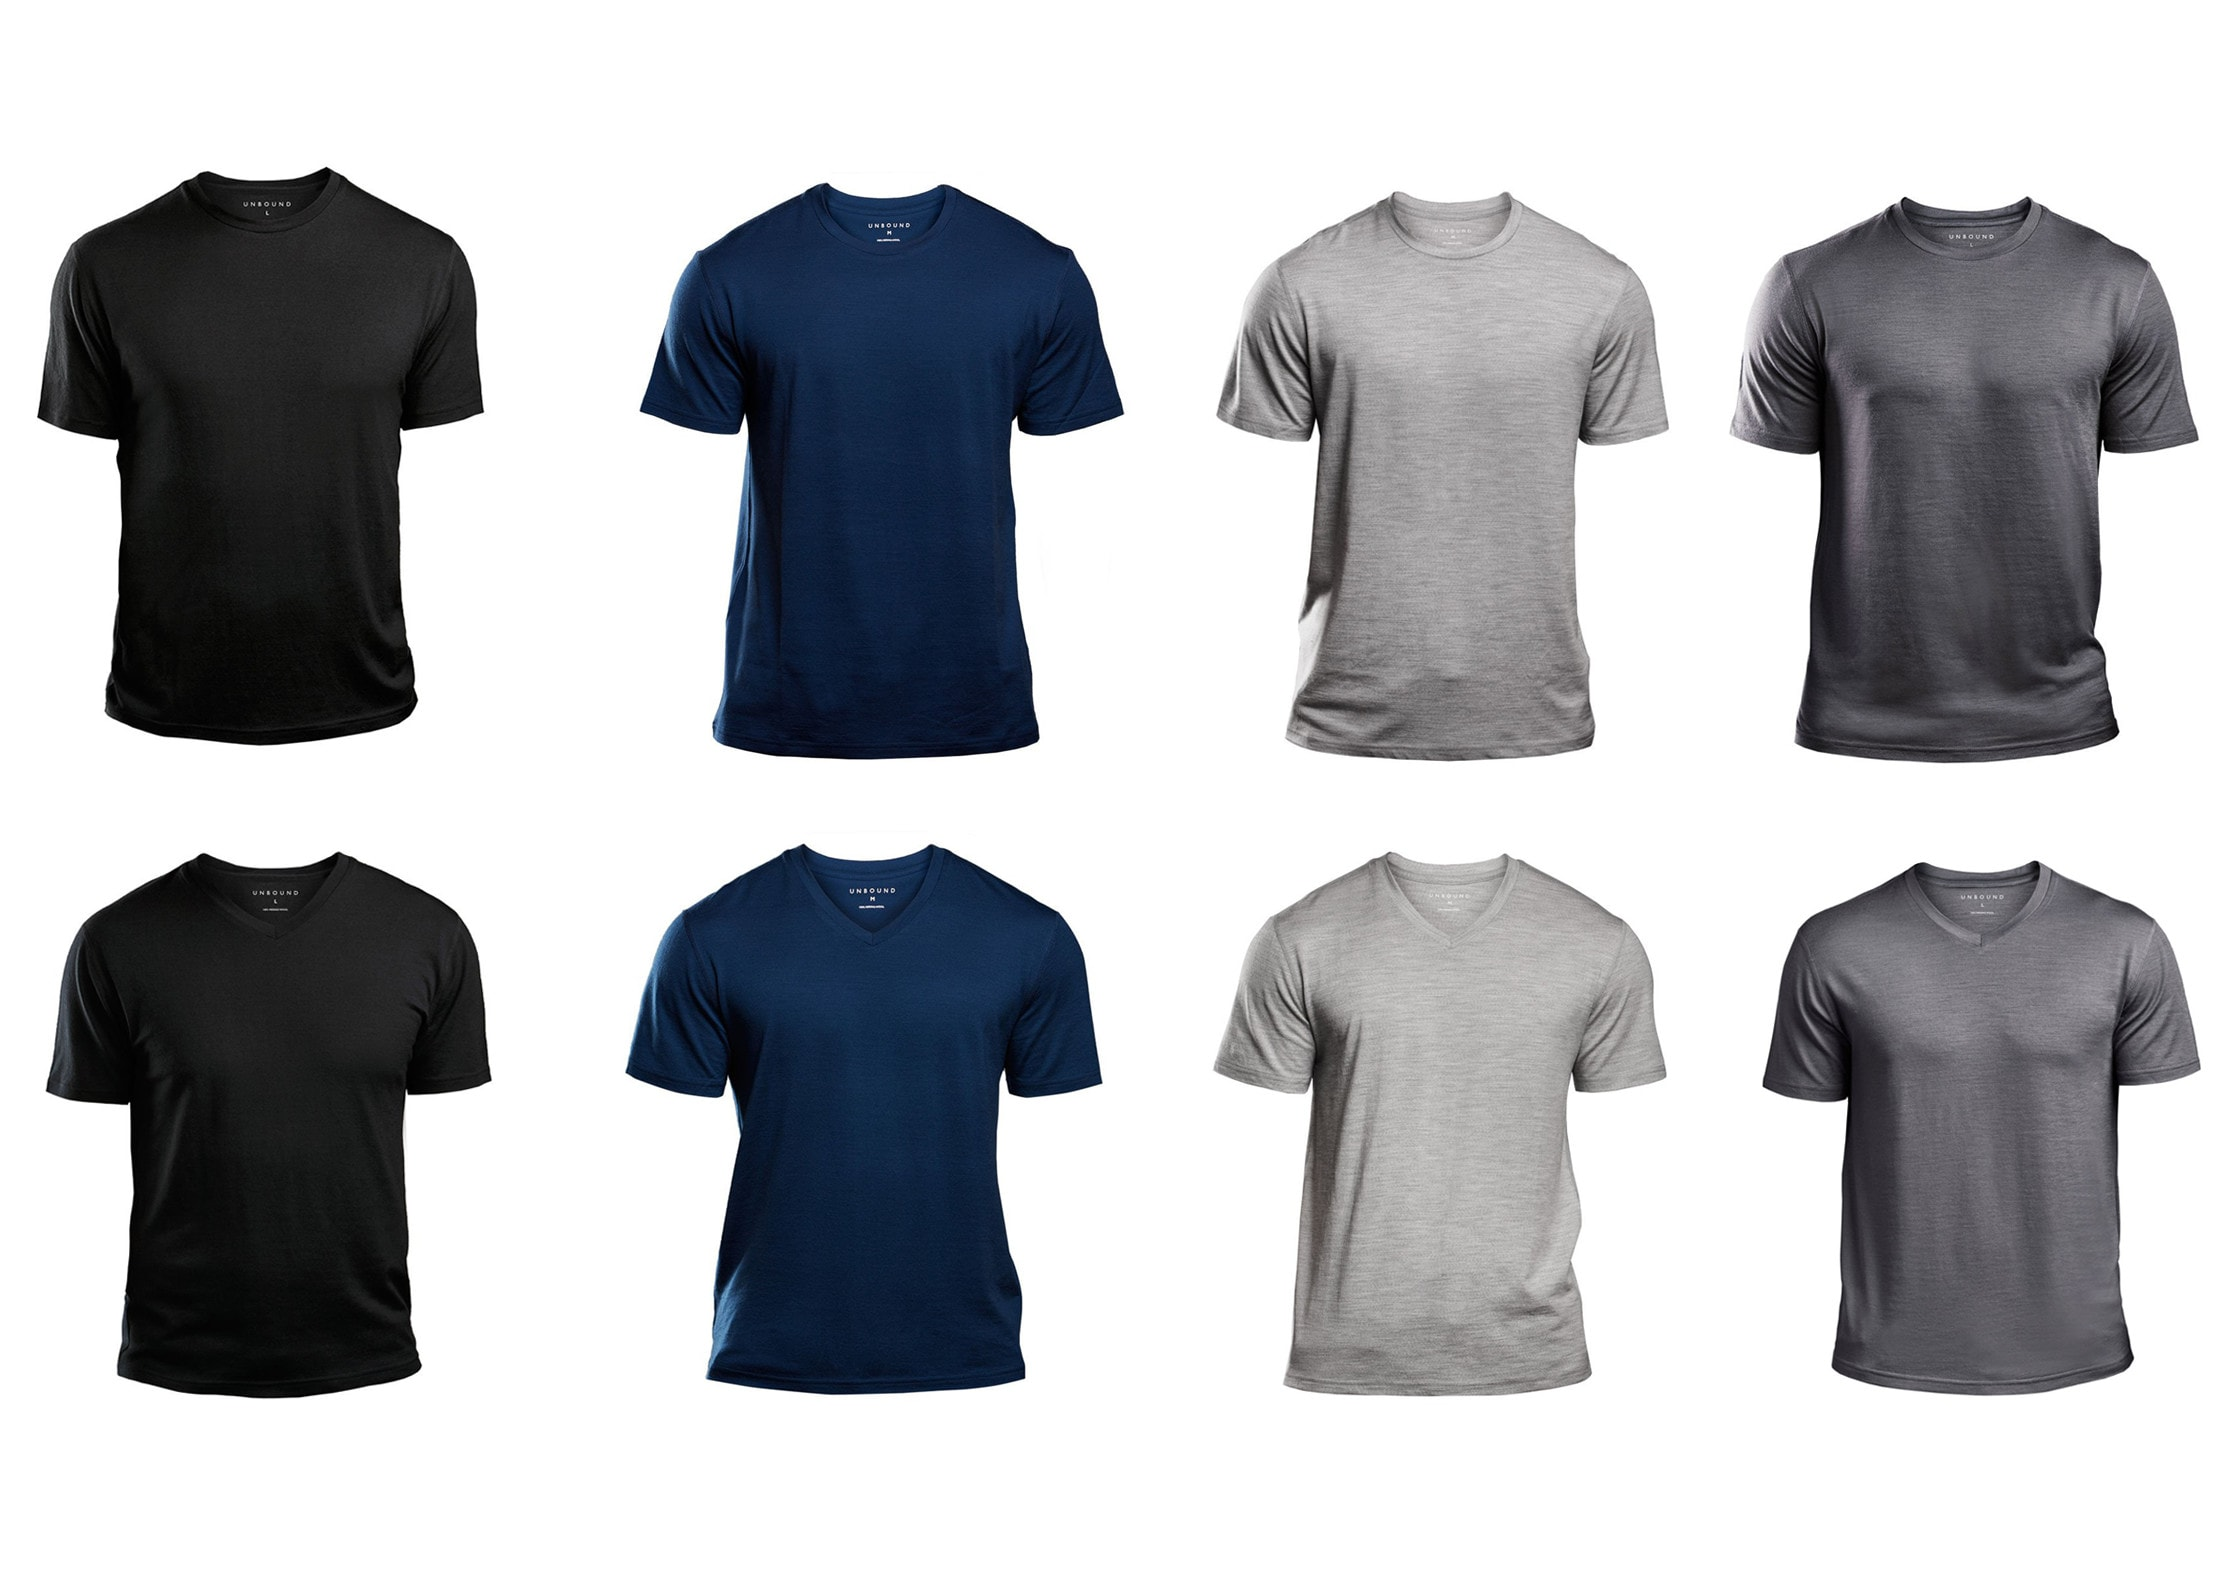 095fff32d6a47e Unbound Merino Crew Neck T-Shirt Review | Pack Hacker